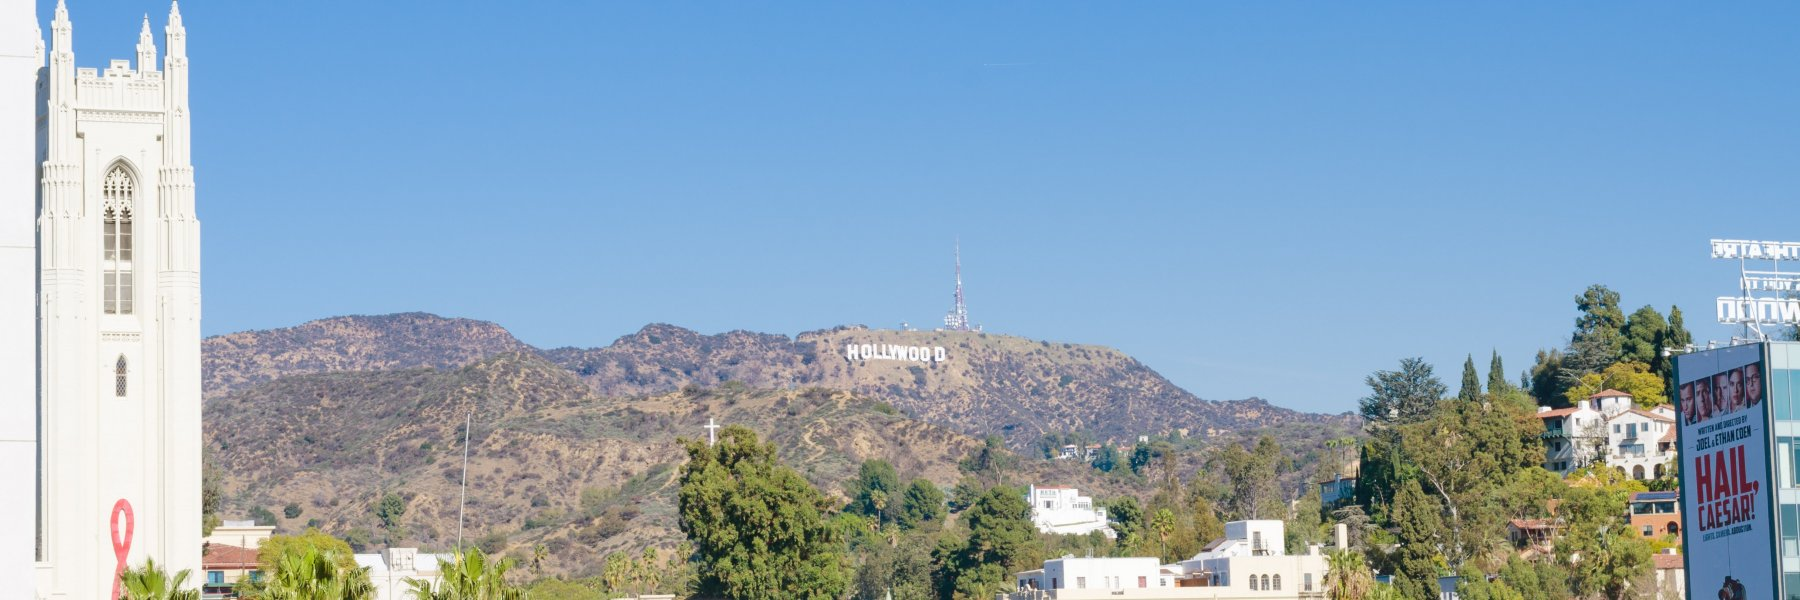 Hollywood Hills is a high end hillside neighborhood in Los Angeles, CA